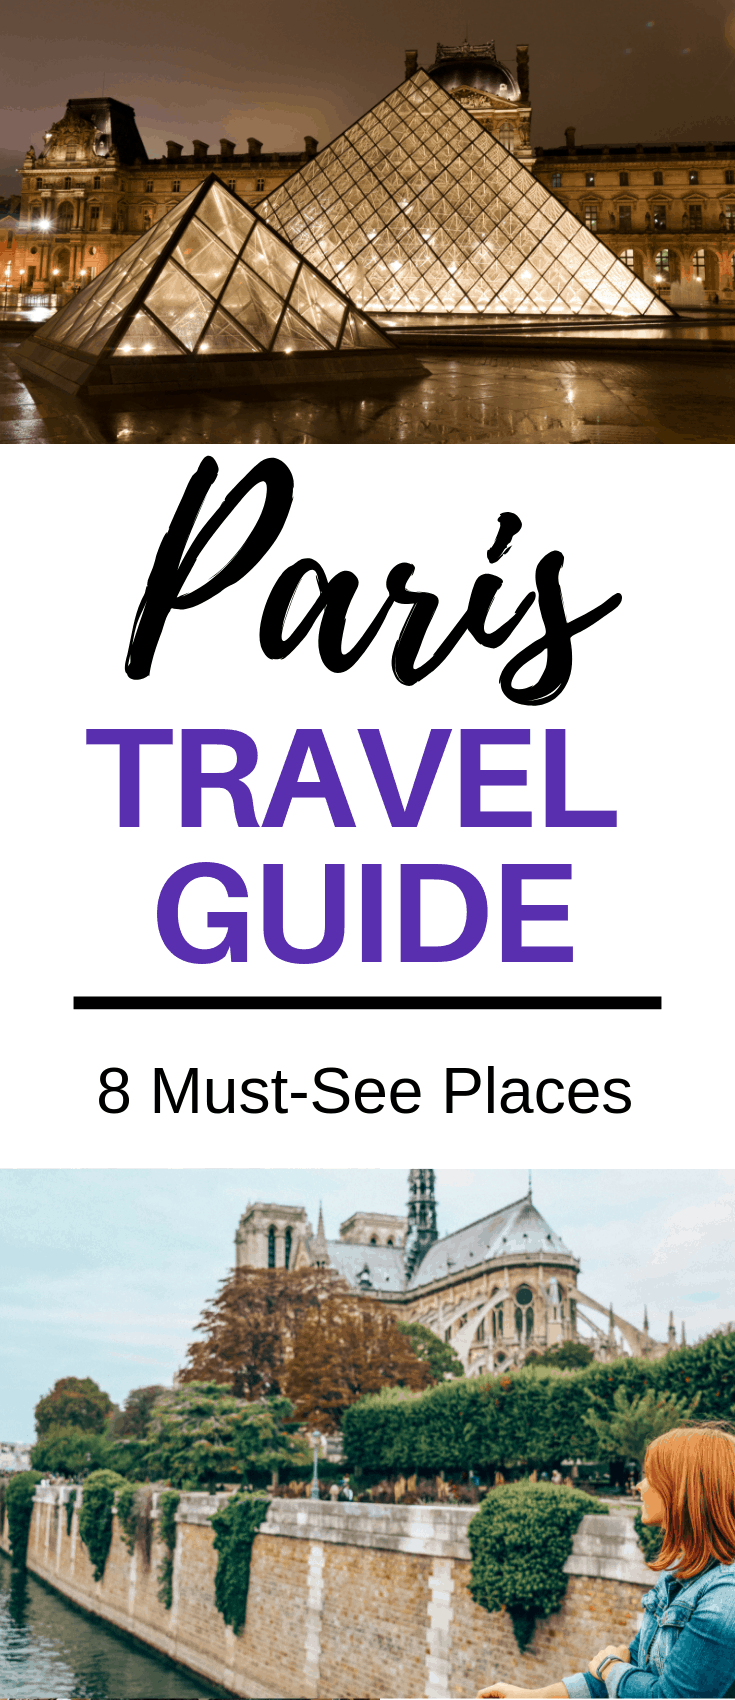 This Paris travel guide covers what to see and the things to do in Paris, France along with some travel tips. I hope this list of the top things to see in Paris, like the Eiffel Tower, Notre Dame and Louvre, helps you whether you're planning for two days in Paris or more.